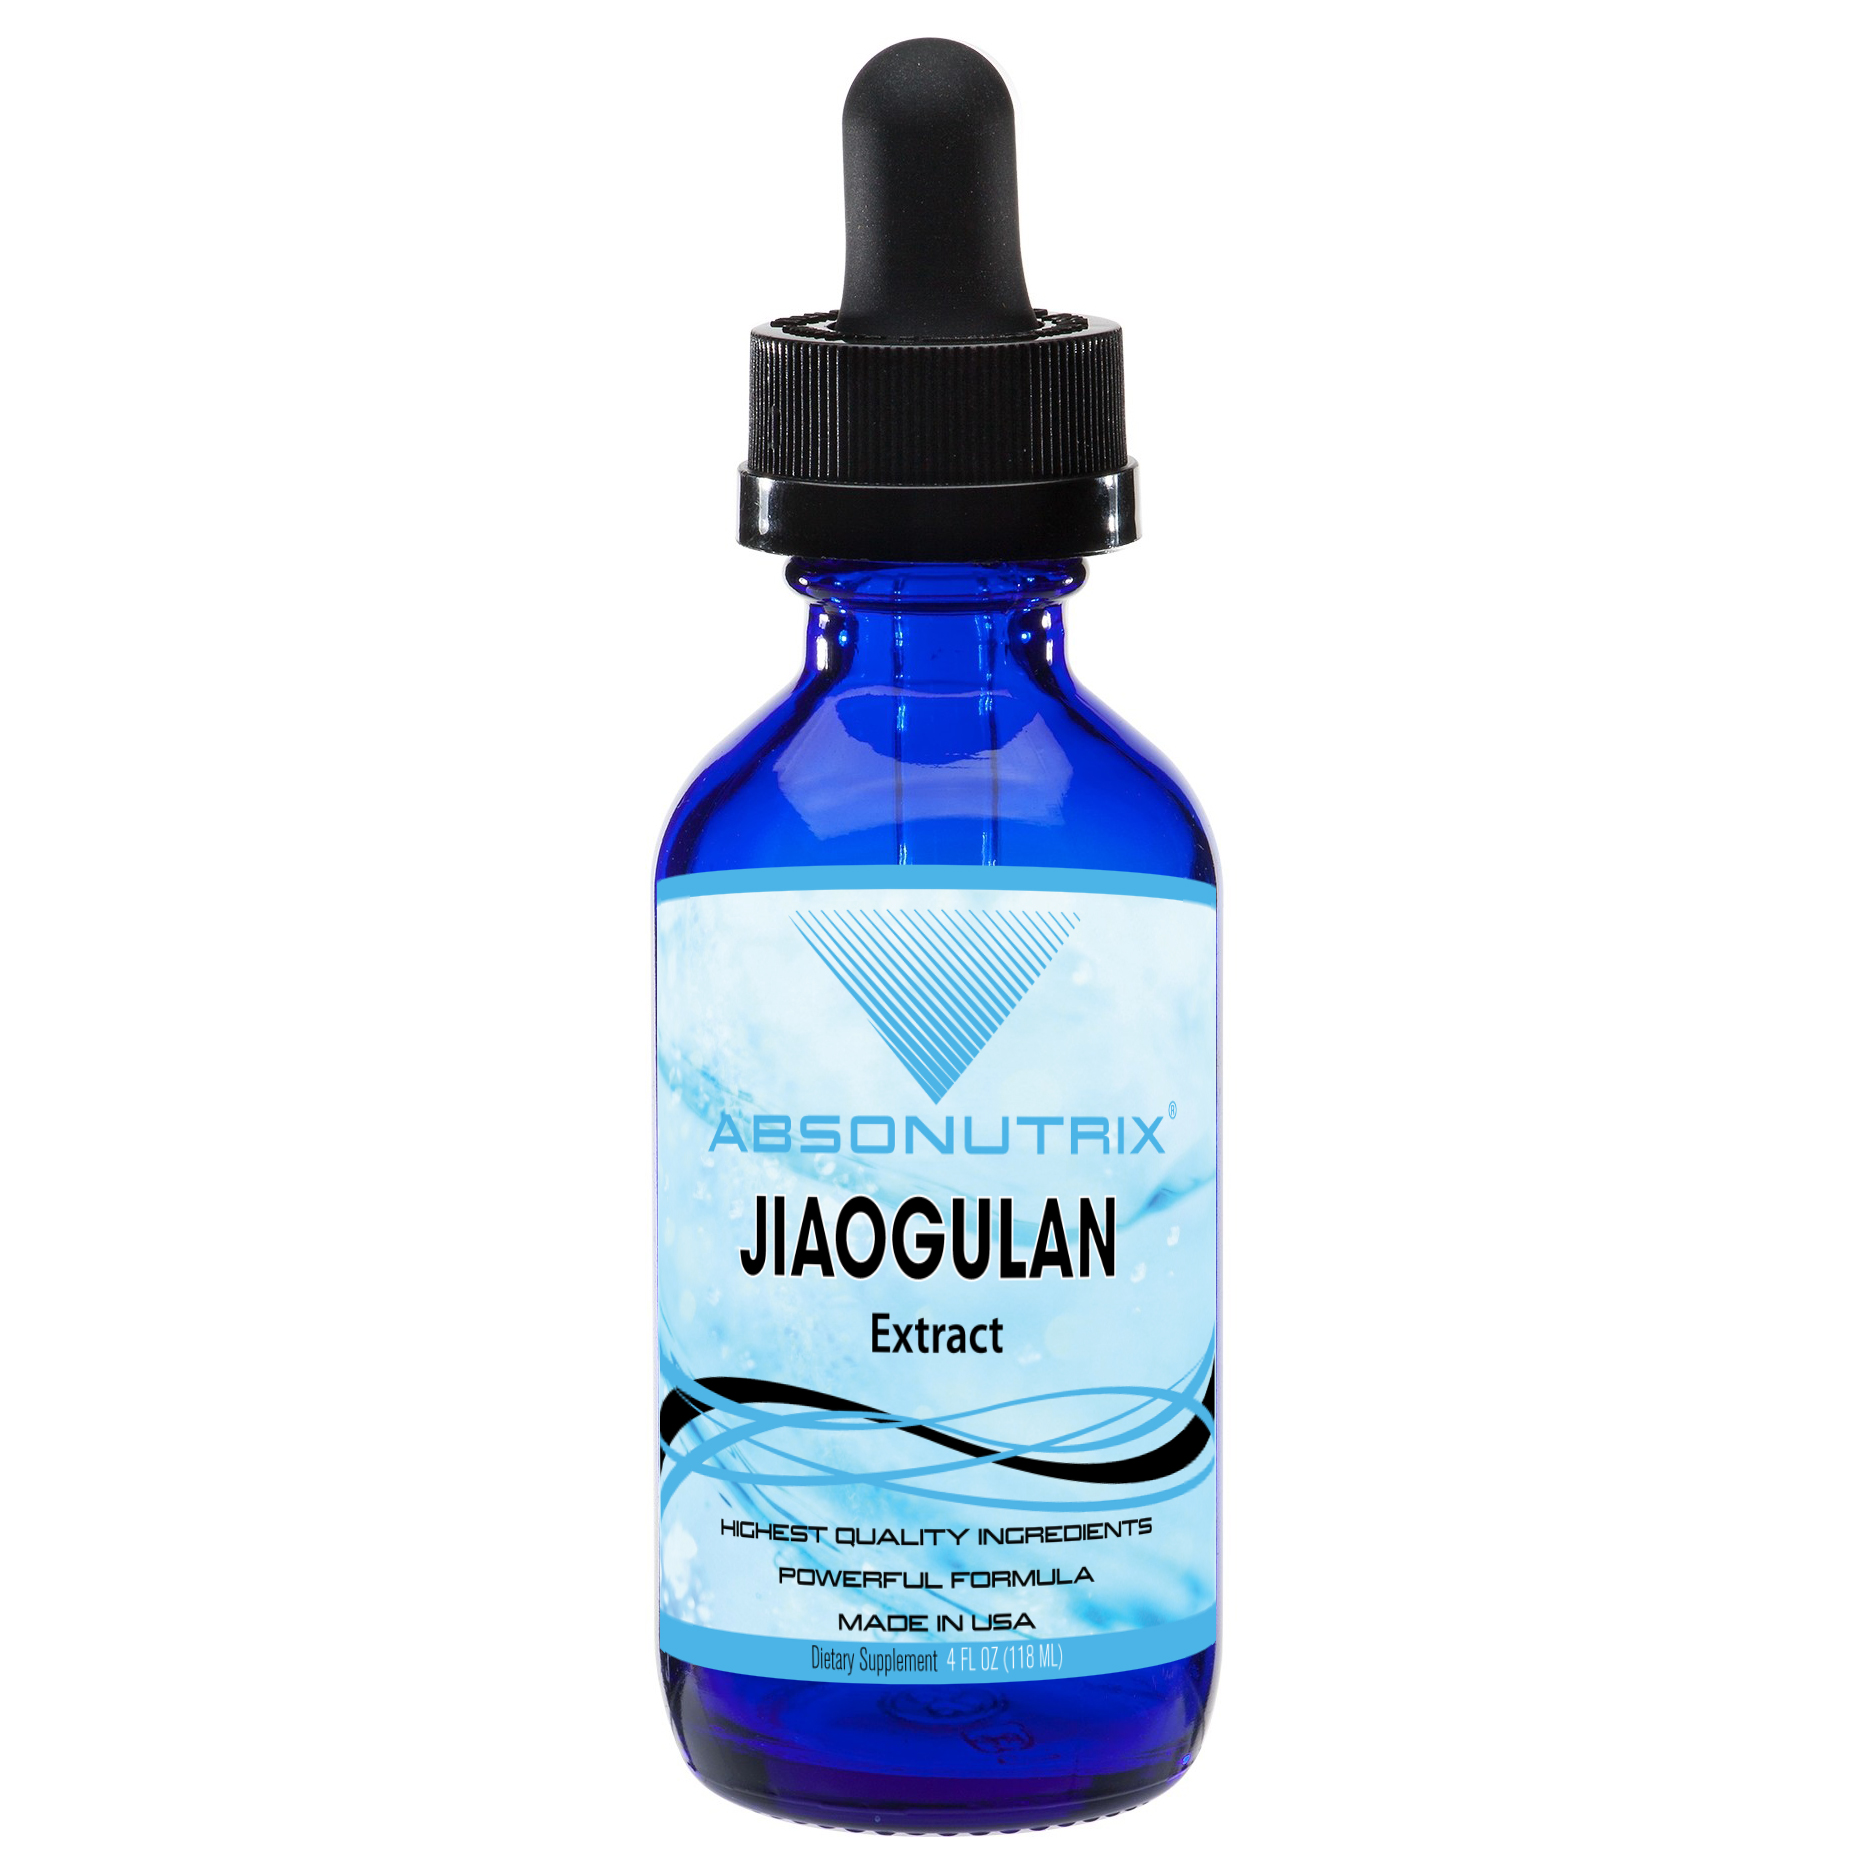 Absonutrix Jiaogulan Extract 593 mg Gynosemma pentaphyllum supports heart health